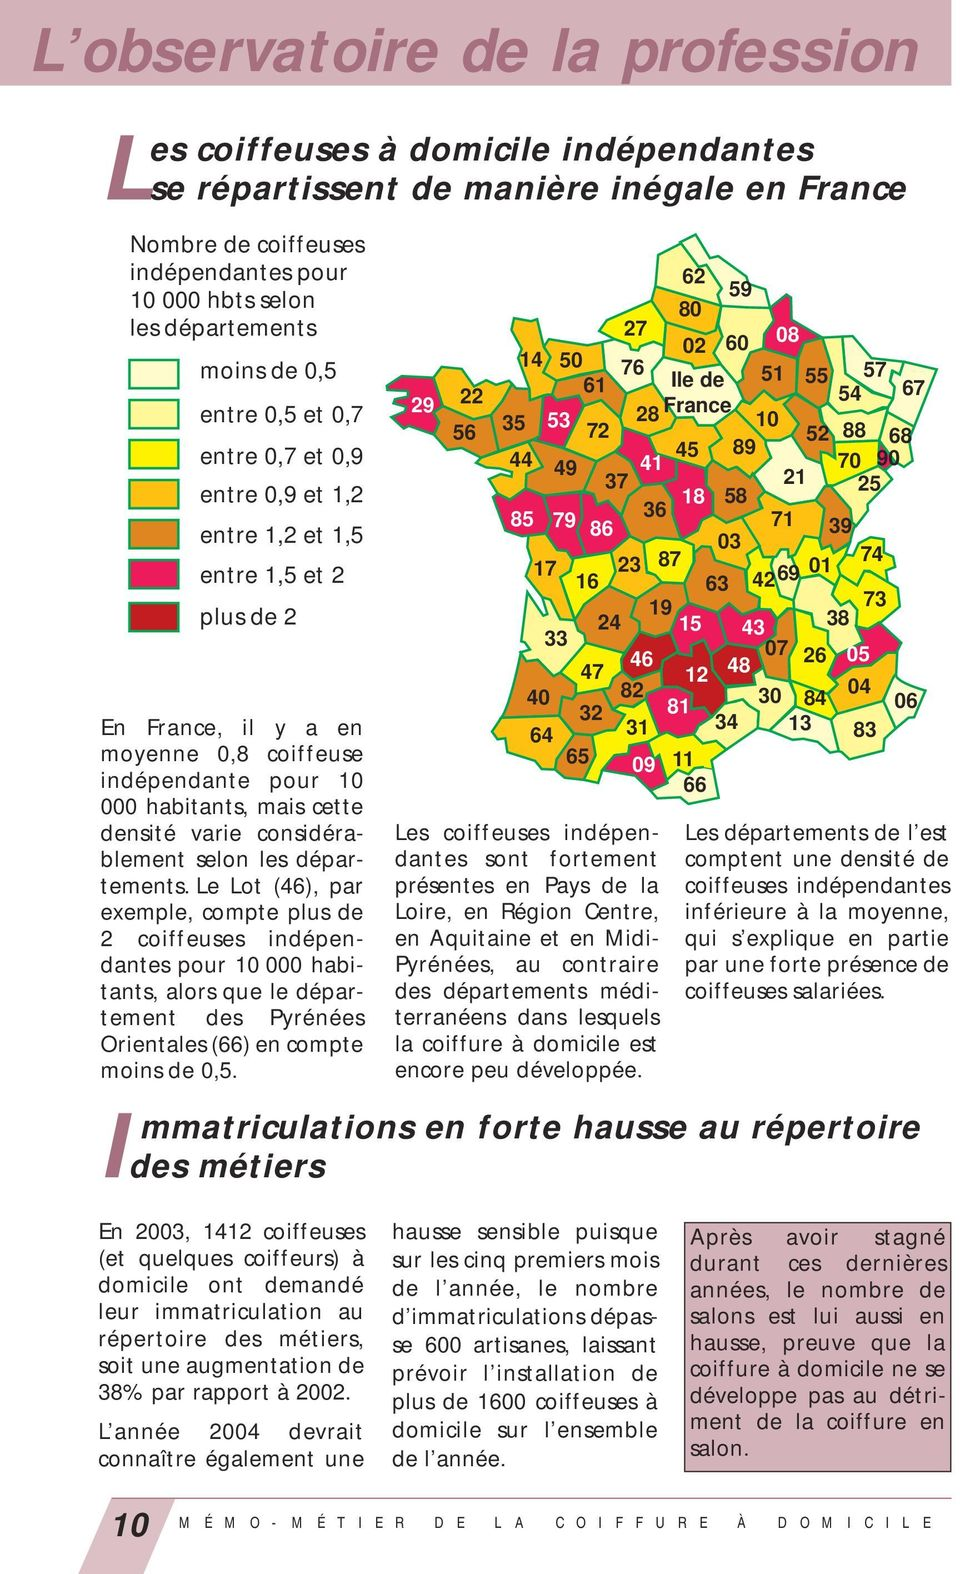 Varie Considerablement Selon Les Departements